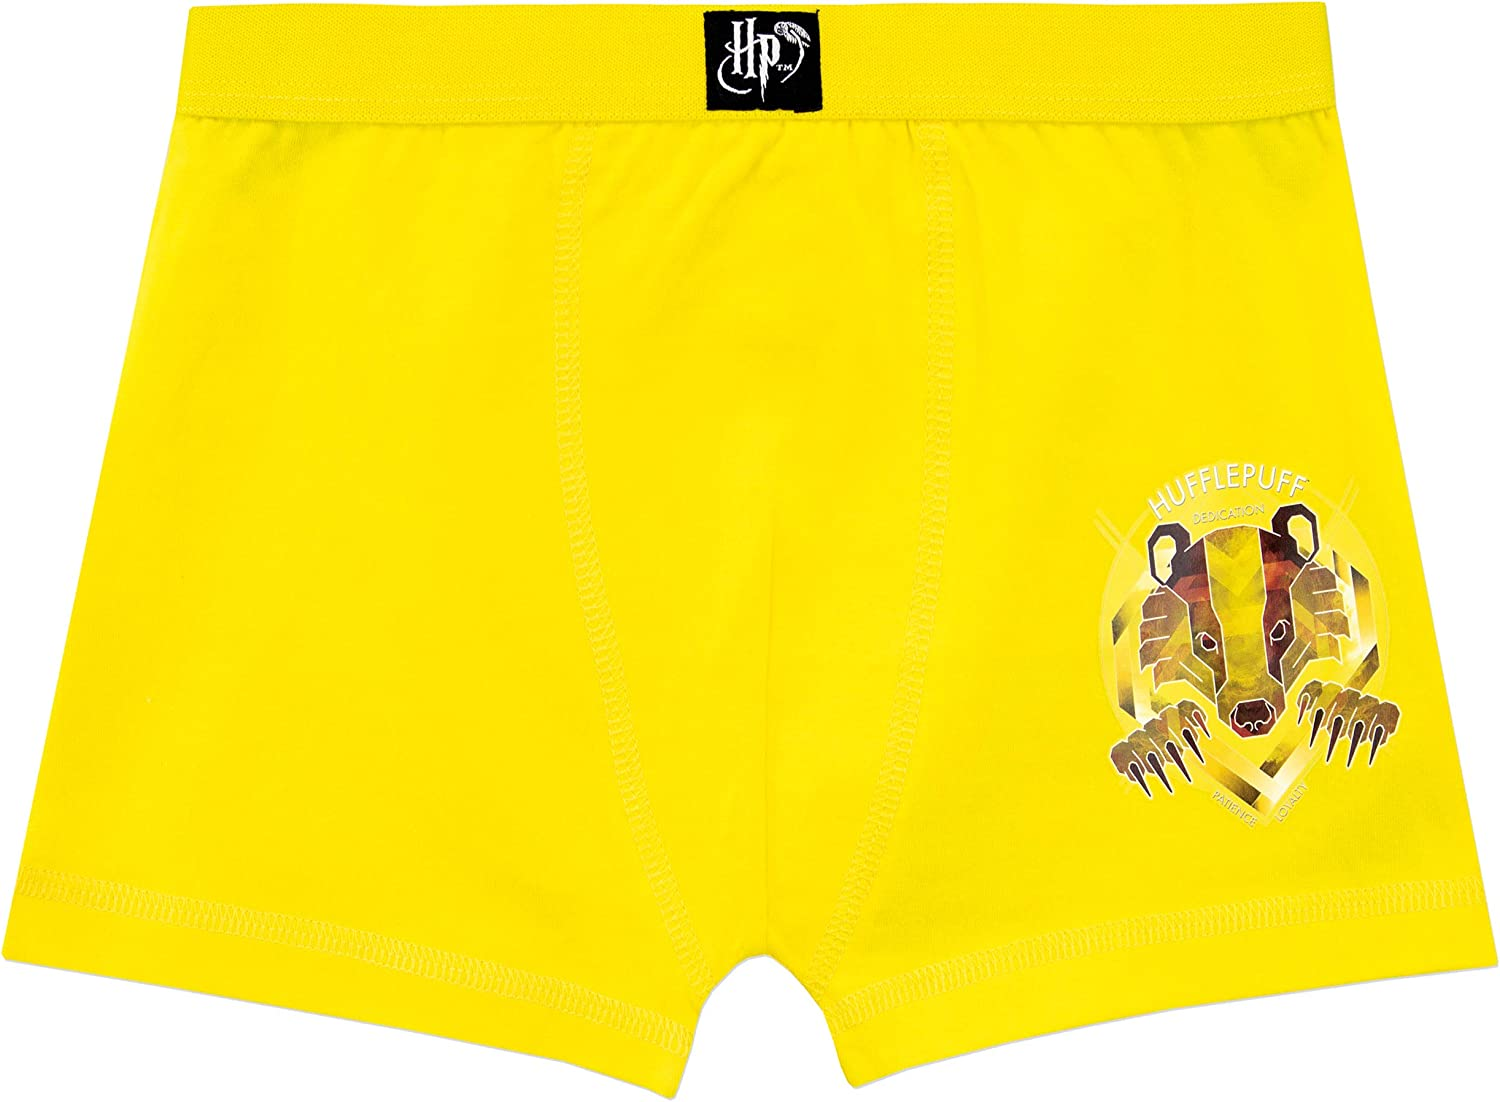 Harry Potter Boys Underwear Pack of 4